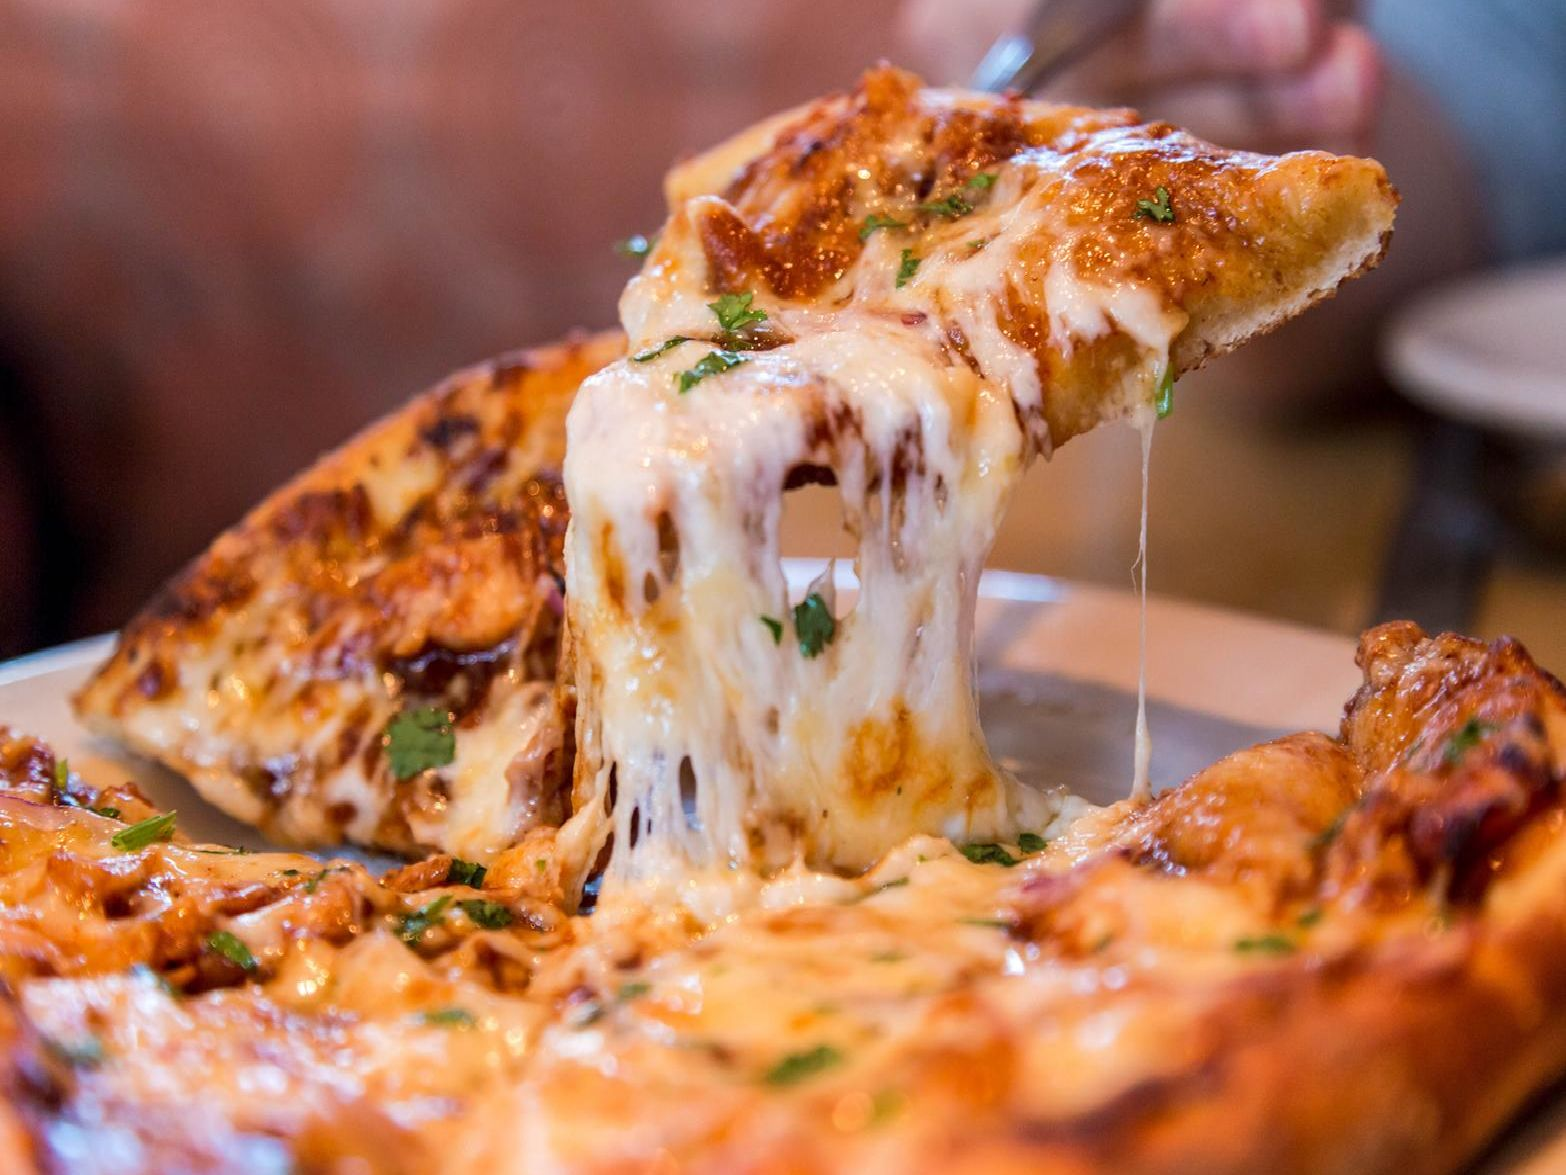 19 Of The Best Pizza Restaurants In Scotland According To